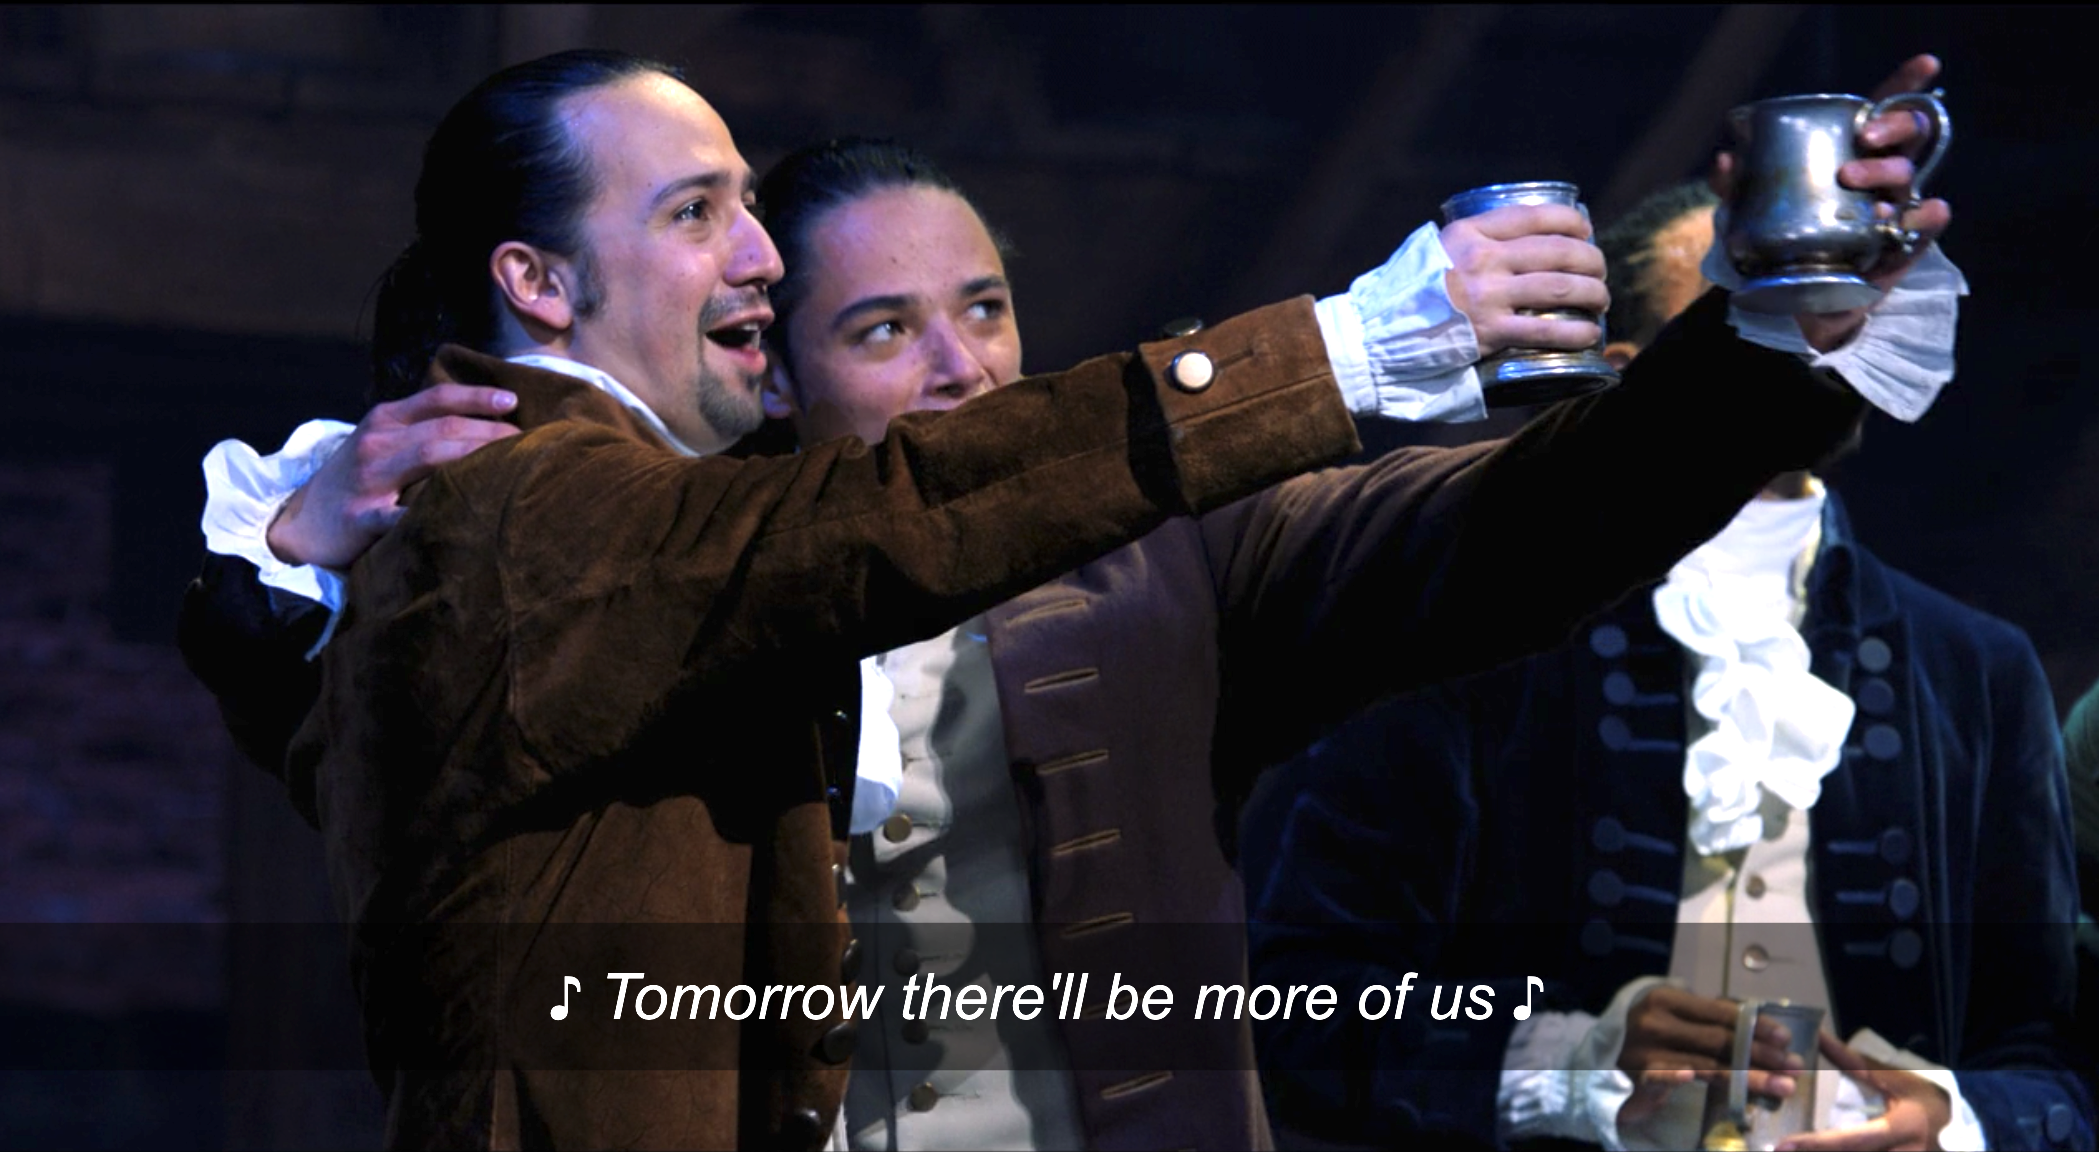 """Hamilton, John Laurens, Lafayette, and Hercules Mulligan singing """"Tomorrow there'll be more of us"""" while drinking in the pub during """"The Story of Tonight"""""""